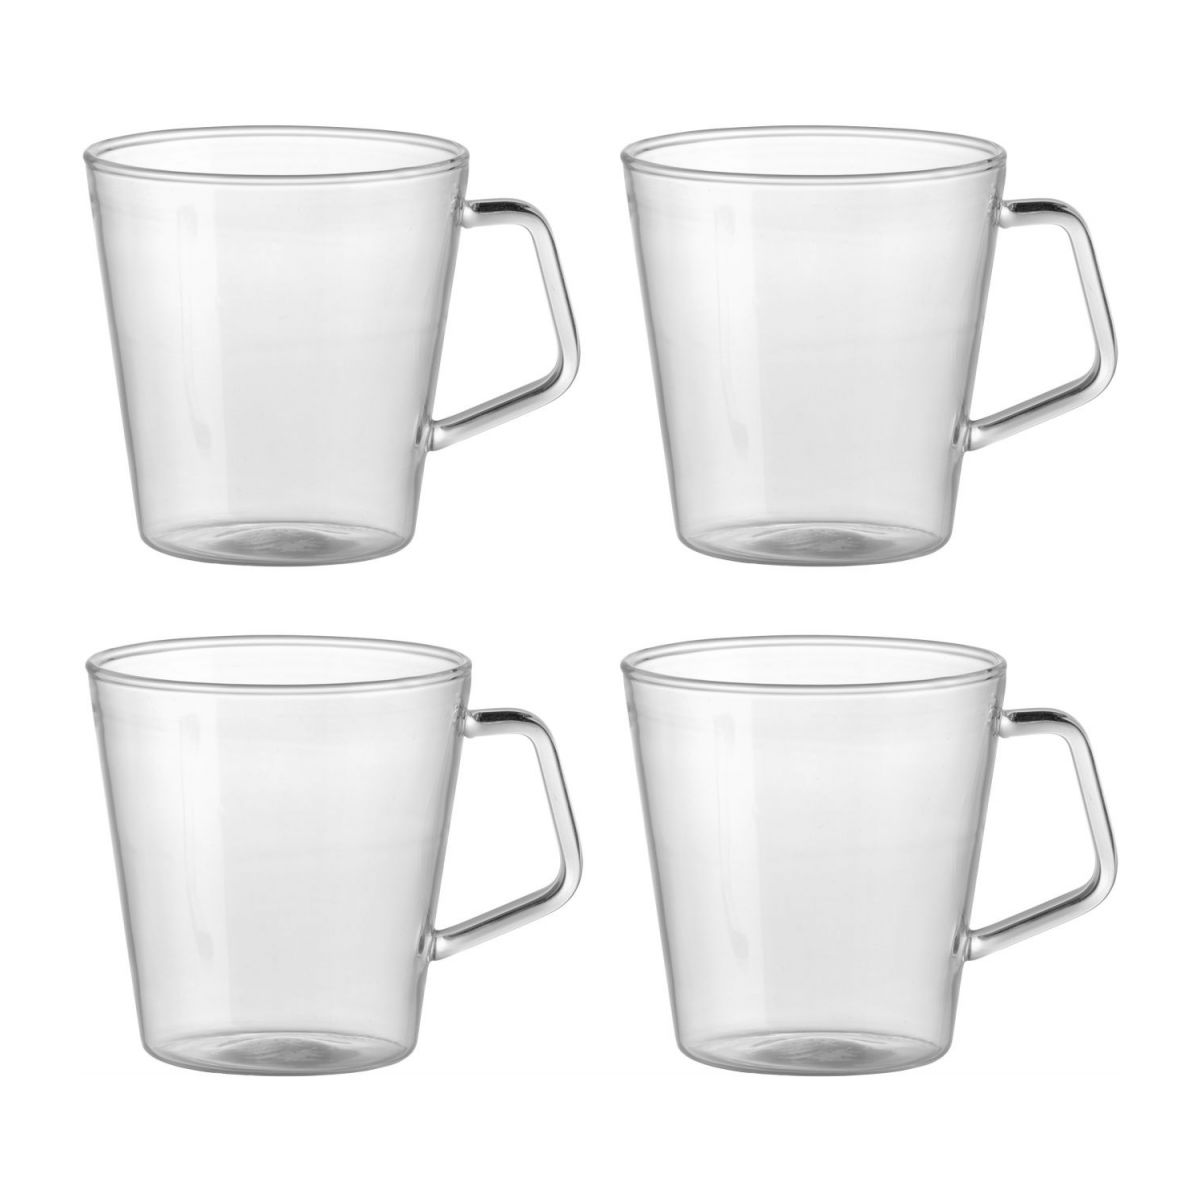 set of 4 mugs n°1